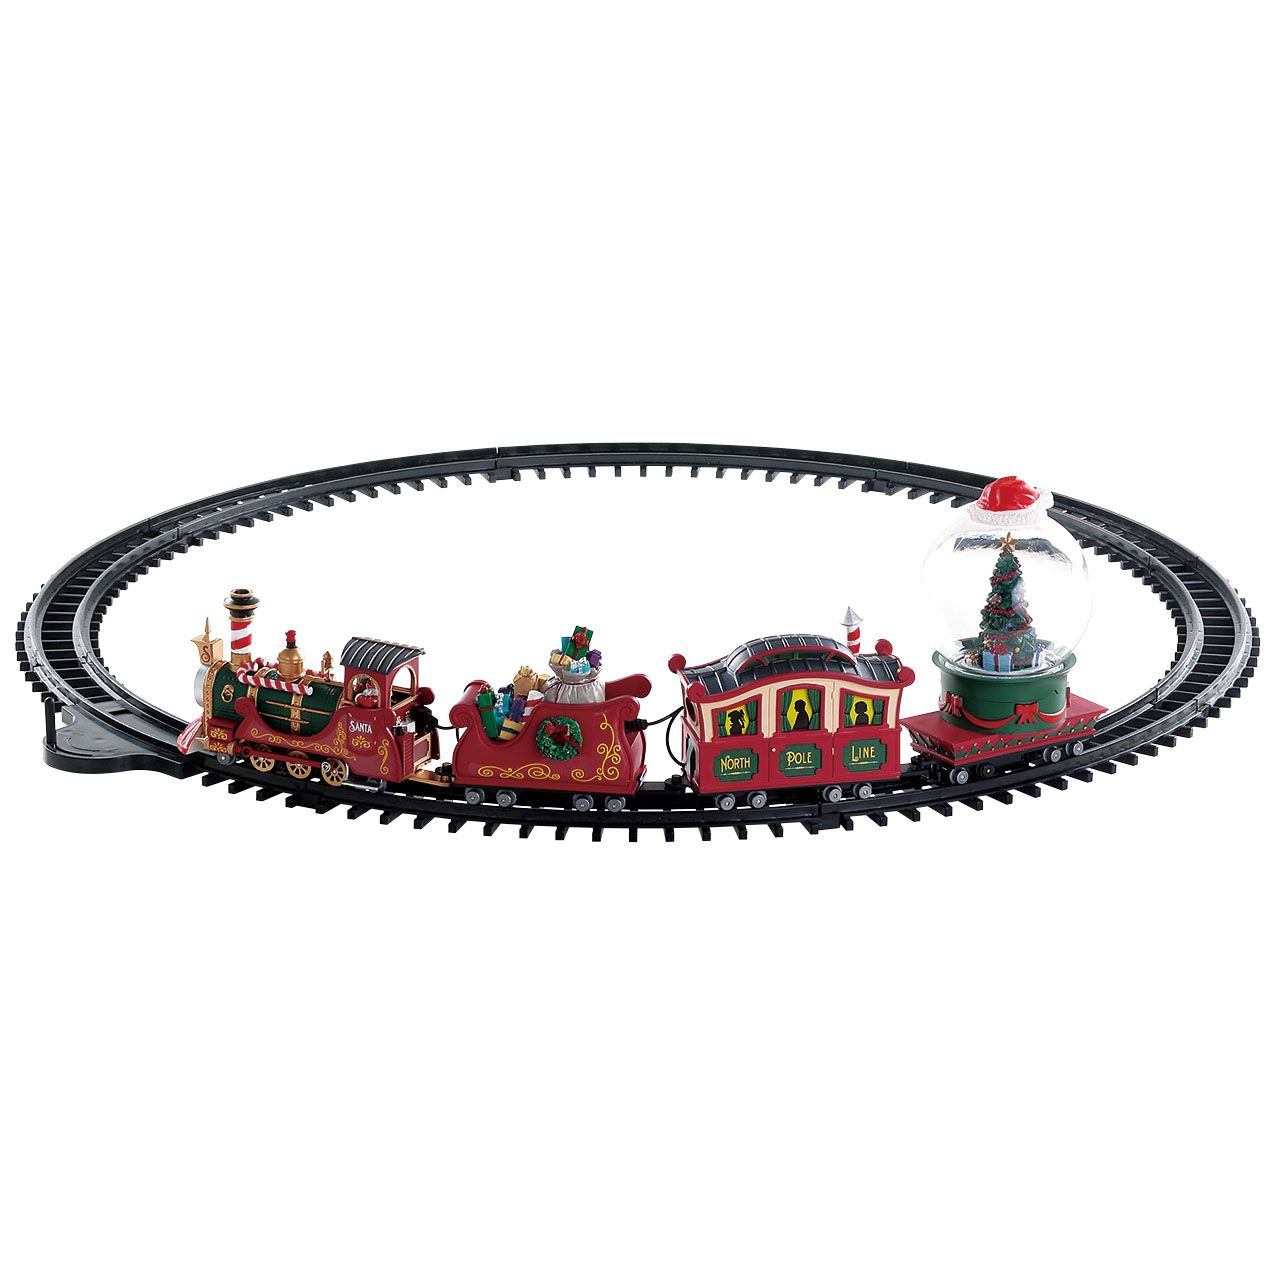 The train runs on the tracks.<br /> When activated, Christmas Tree ...